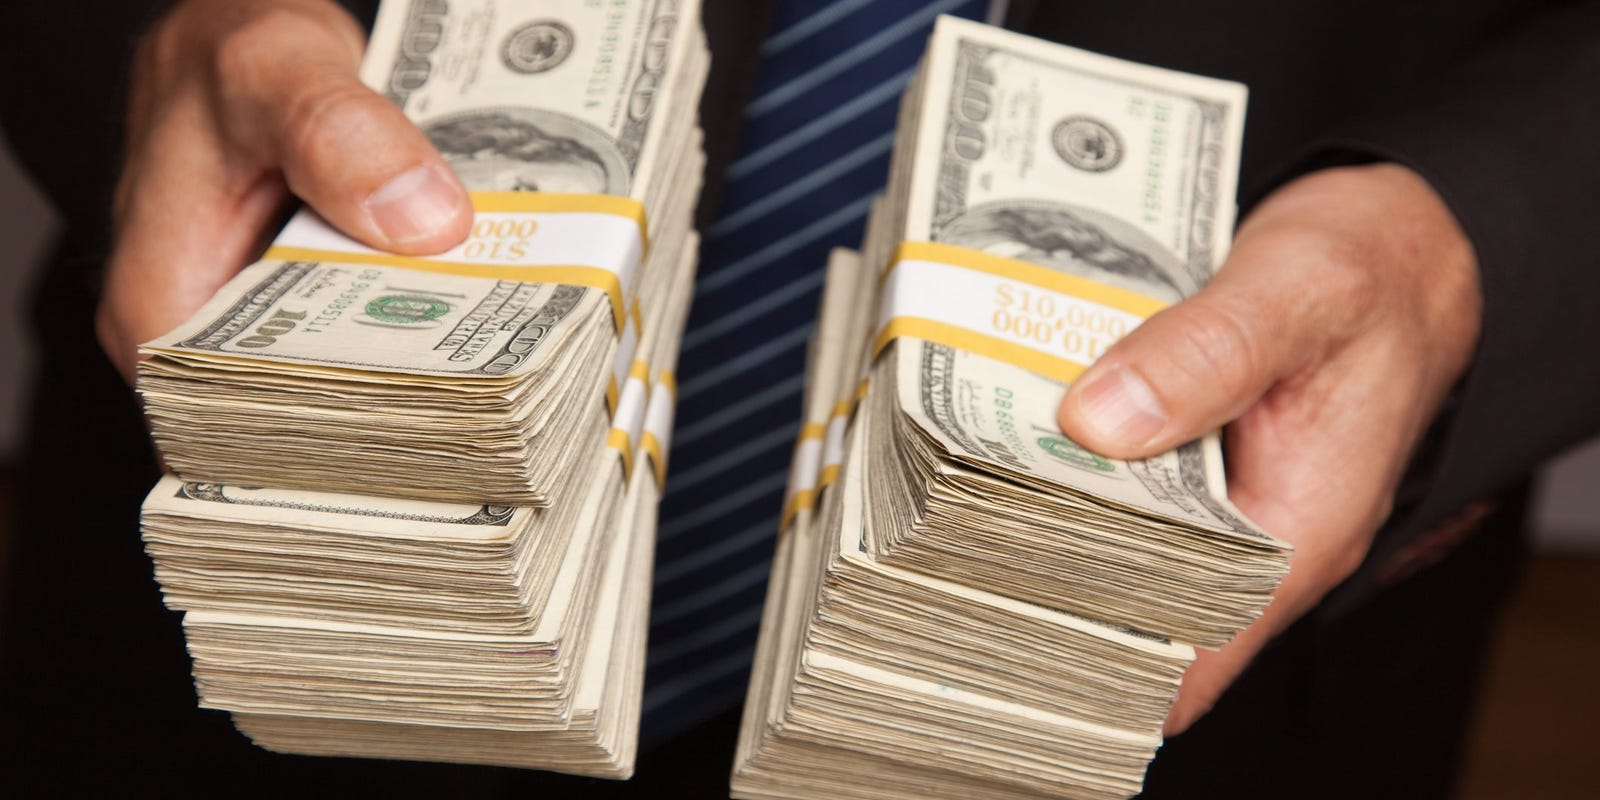 Is it a bribe? Ex-NJ assemblyman accused of taking bag of cash urges court to toss charge